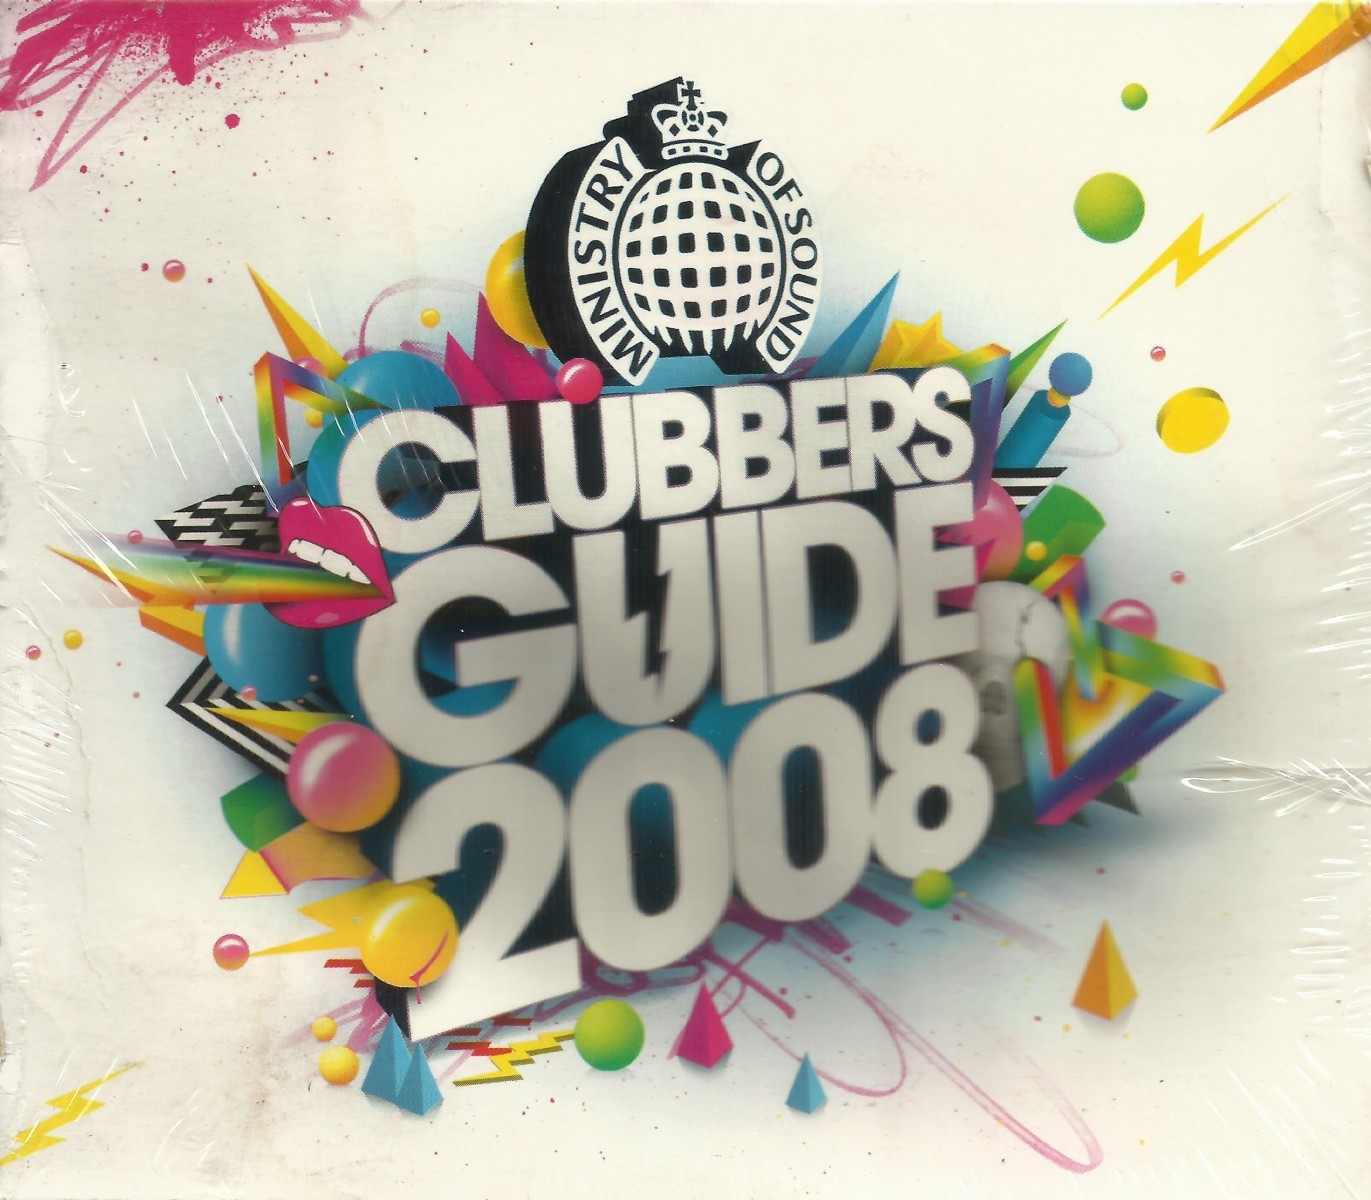 Ministry Of Sound: Clubbers Guide 2008 CD - CDJUST 235